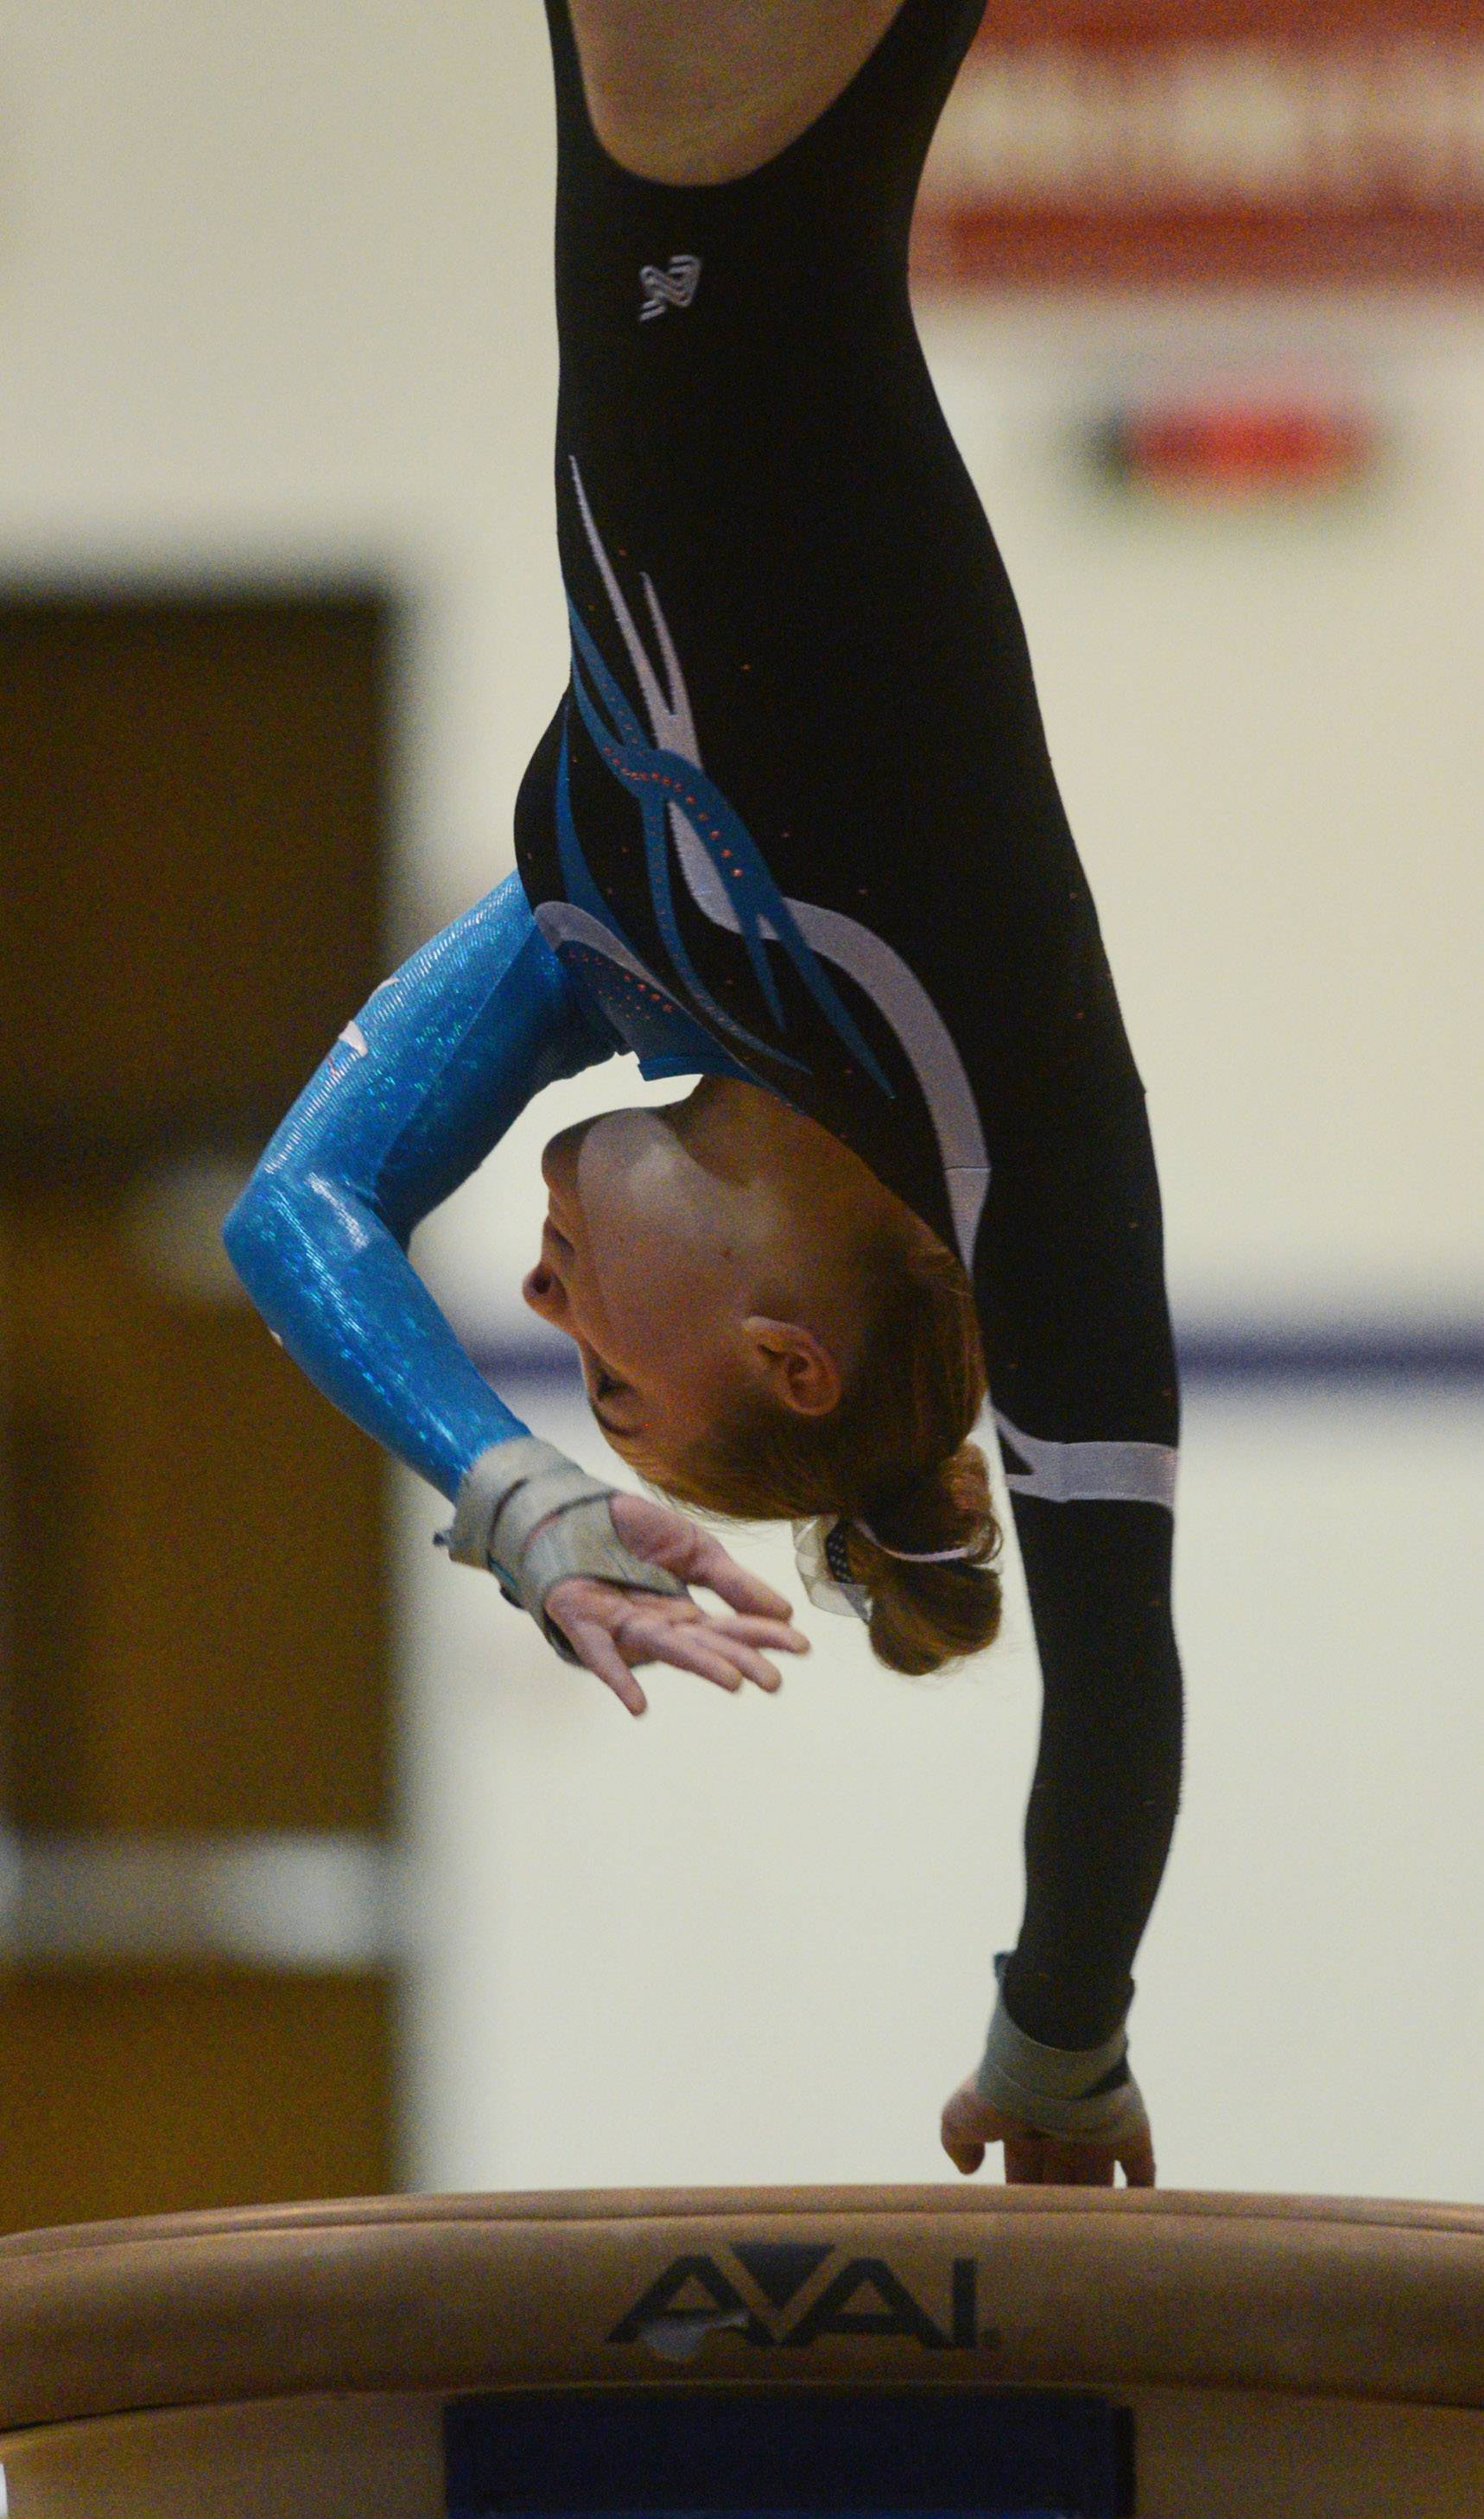 Prospect's Jillian Schmit competes on vault during Wednesday's gymnastics meet in Rolling Meadows.